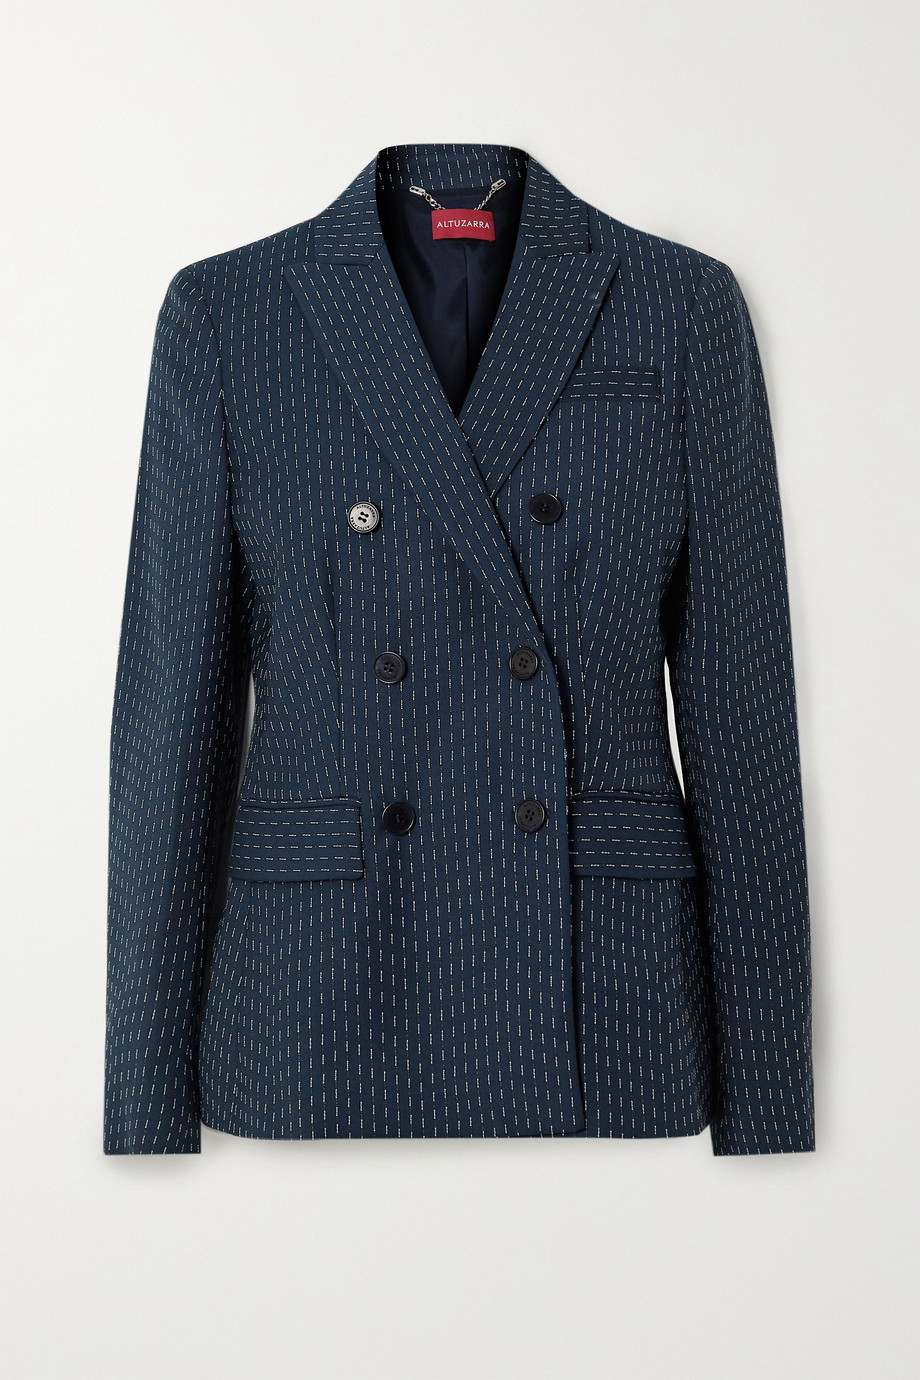 Altuzarra Indiana double-breasted embroidered woven blazer